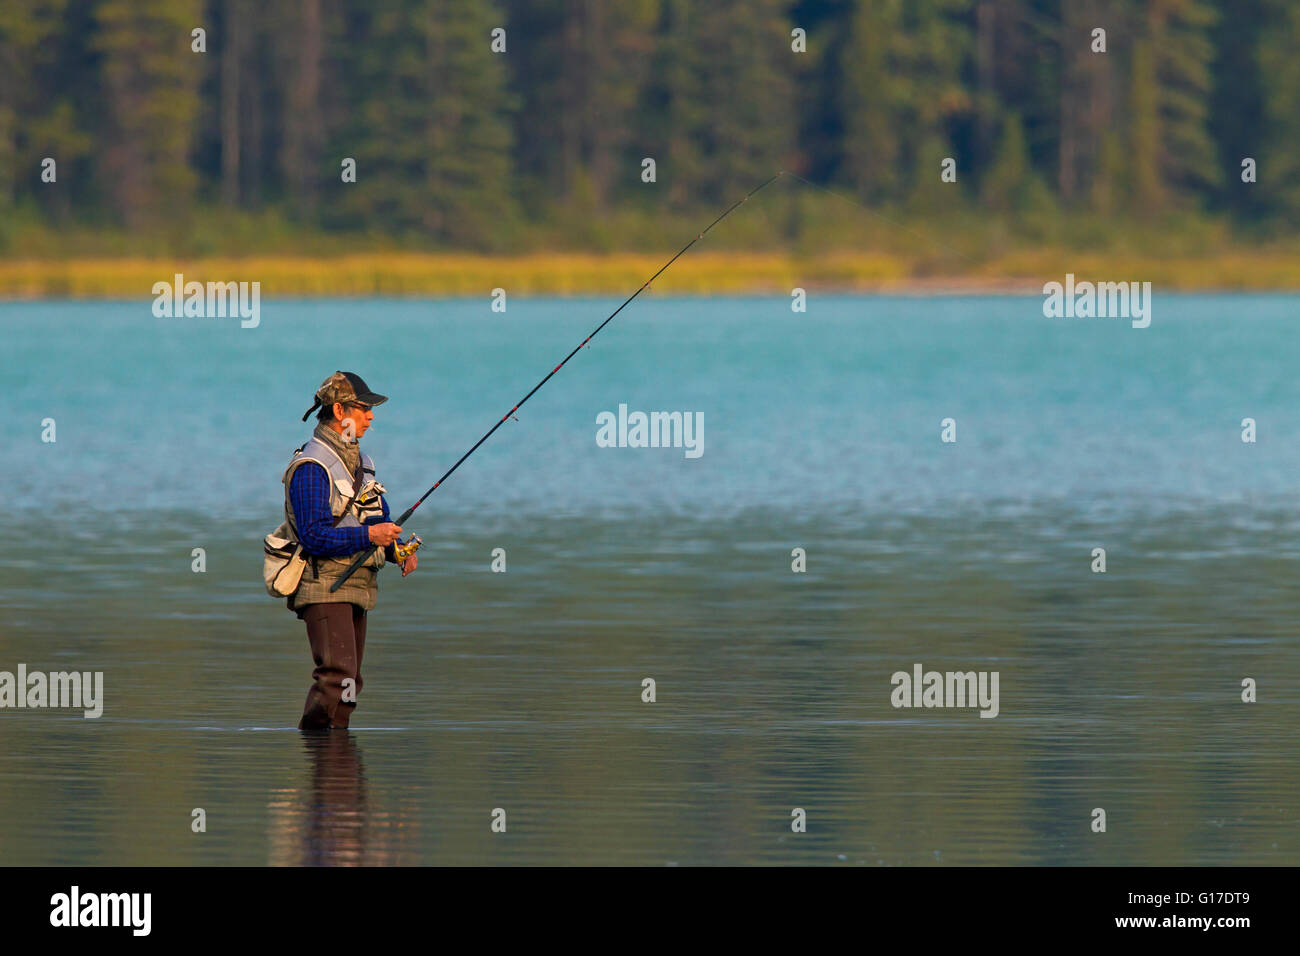 Fly angler fly fishing in lake, Banff National Park, Alberta, Rocky Mountains, Canada - Stock Image